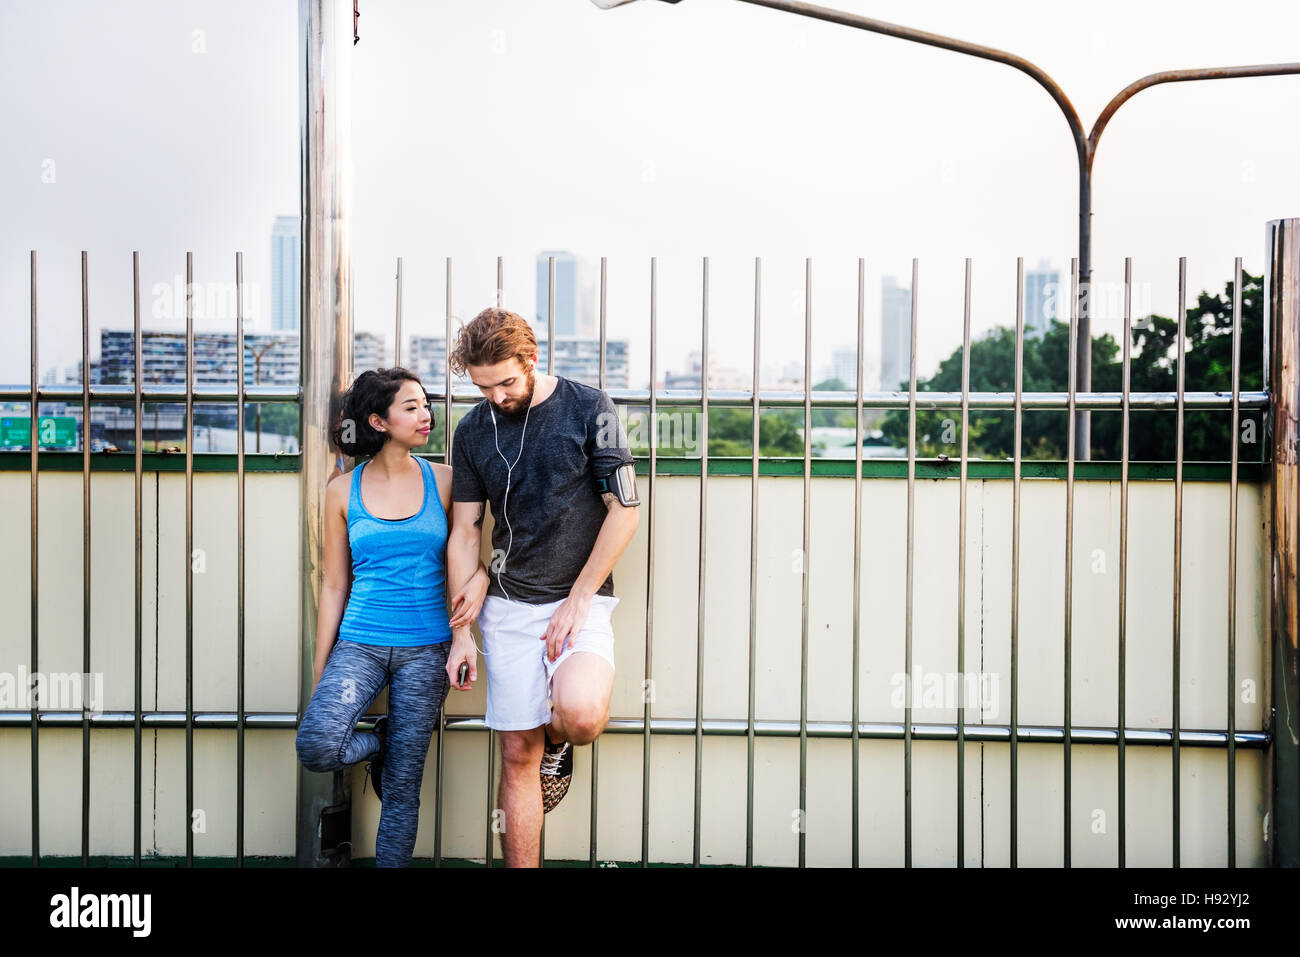 Couple Excercise Workout Healthy Lifestyle Concept - Stock Image